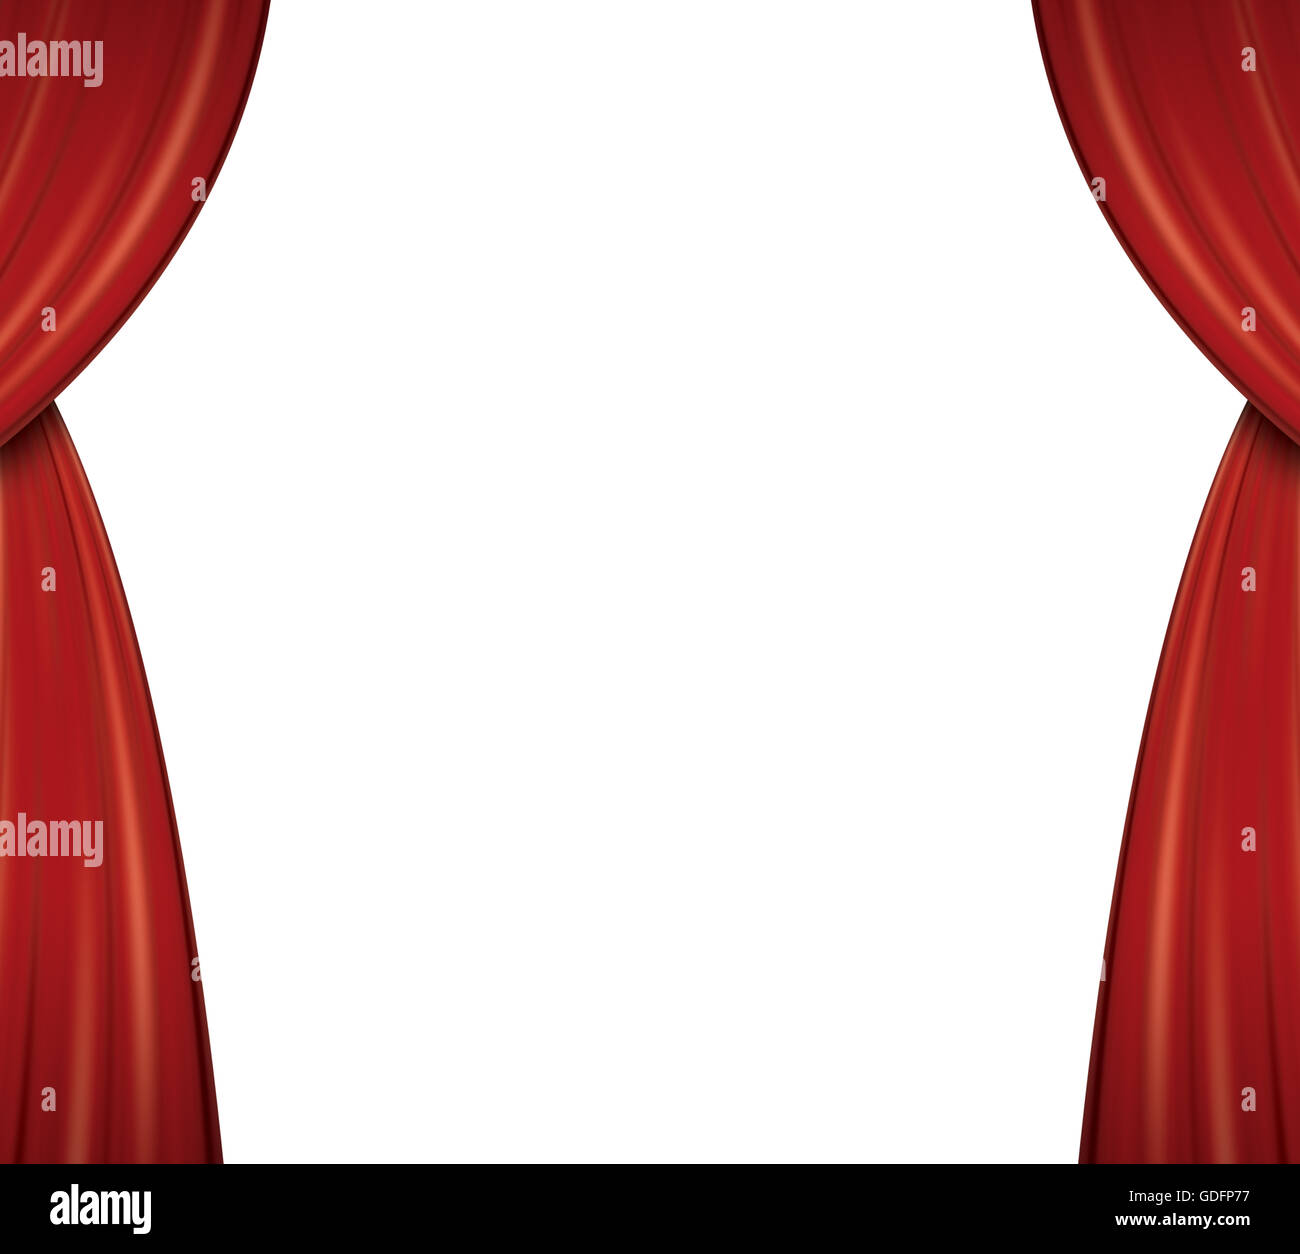 red theater curtains isolated on white background stock photo